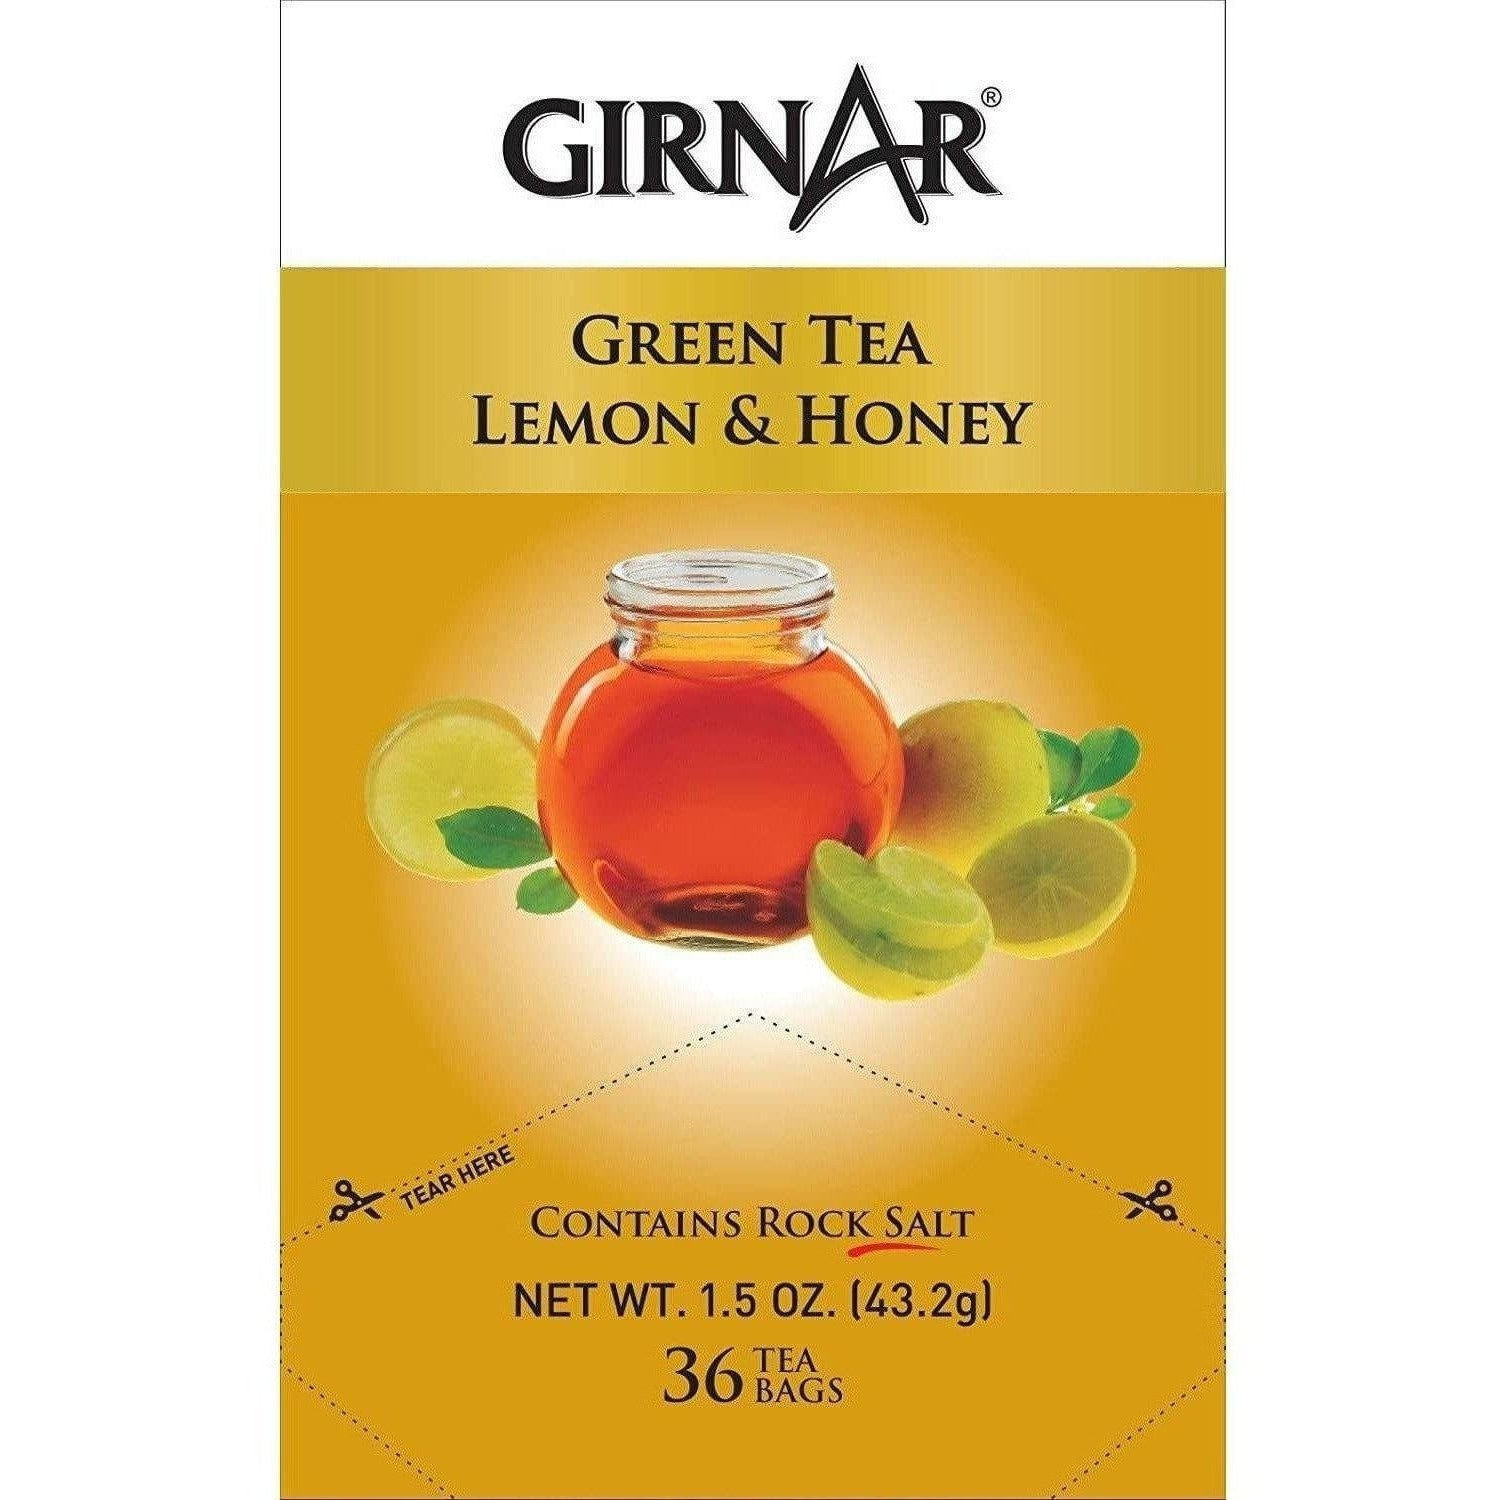 Girnar Green Tea Lemon & Honey